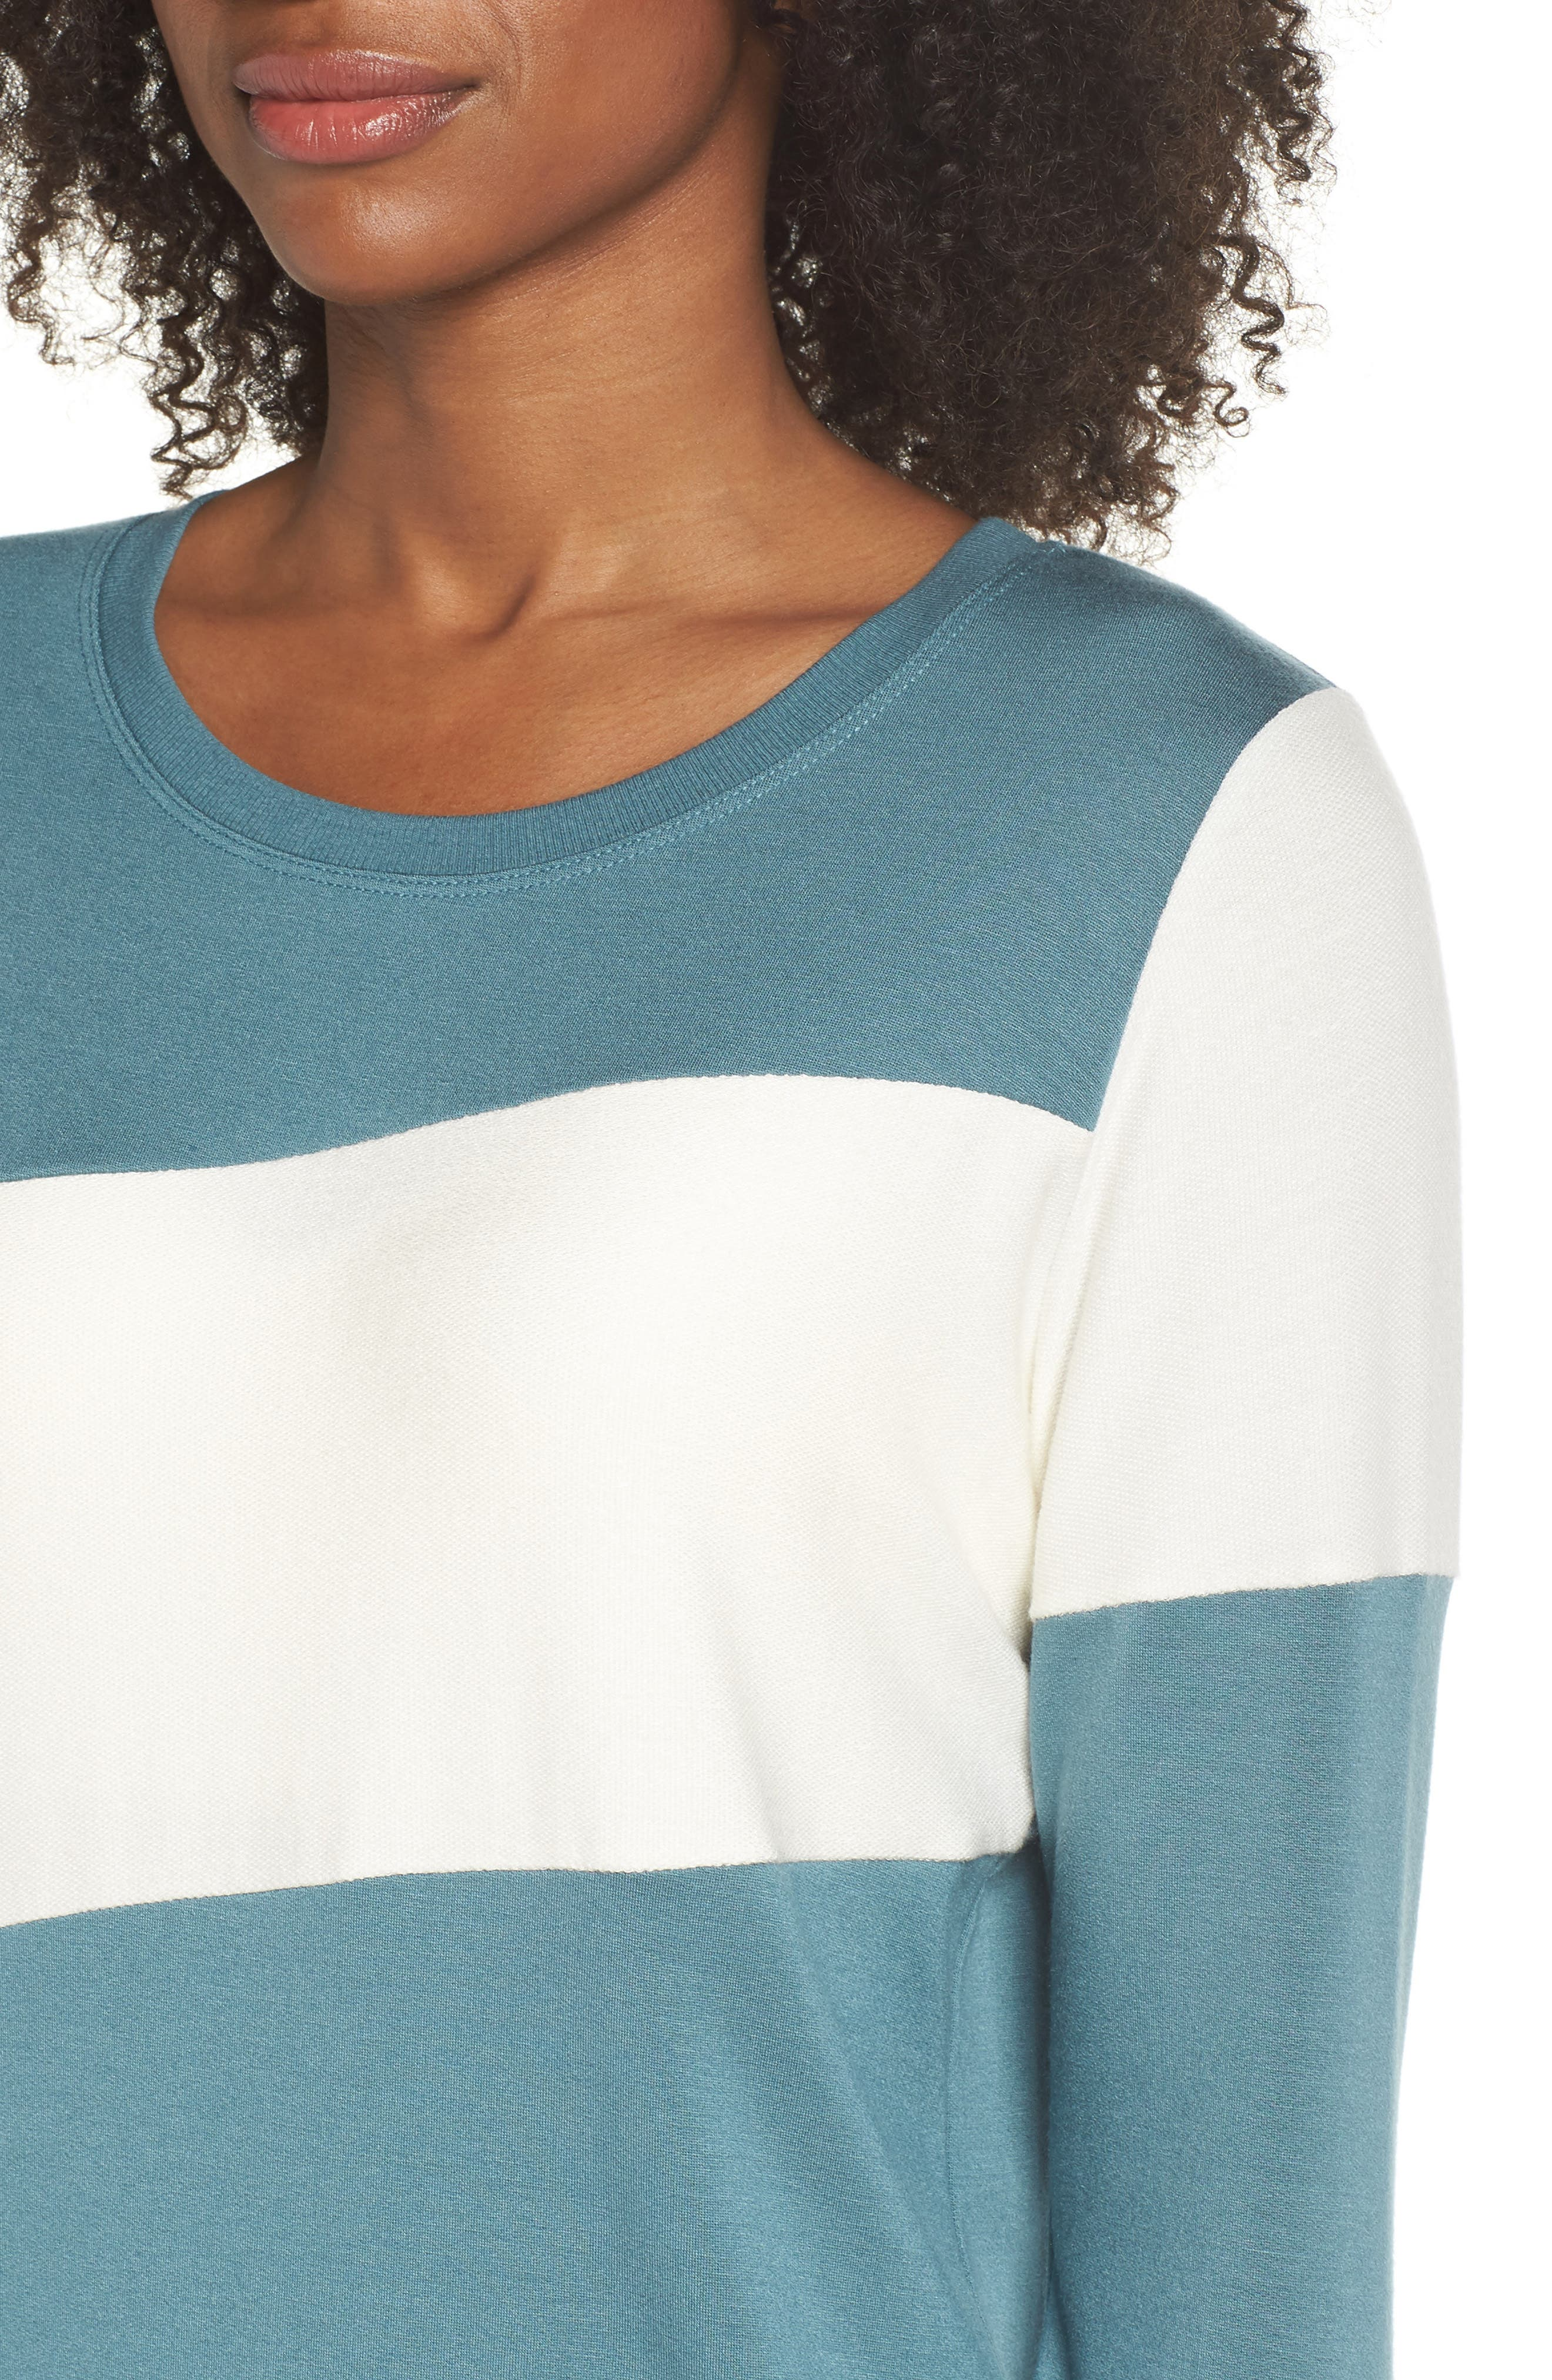 Ramp Sweatshirt,                             Alternate thumbnail 4, color,                             BLUE SURF/ OFF WHITE